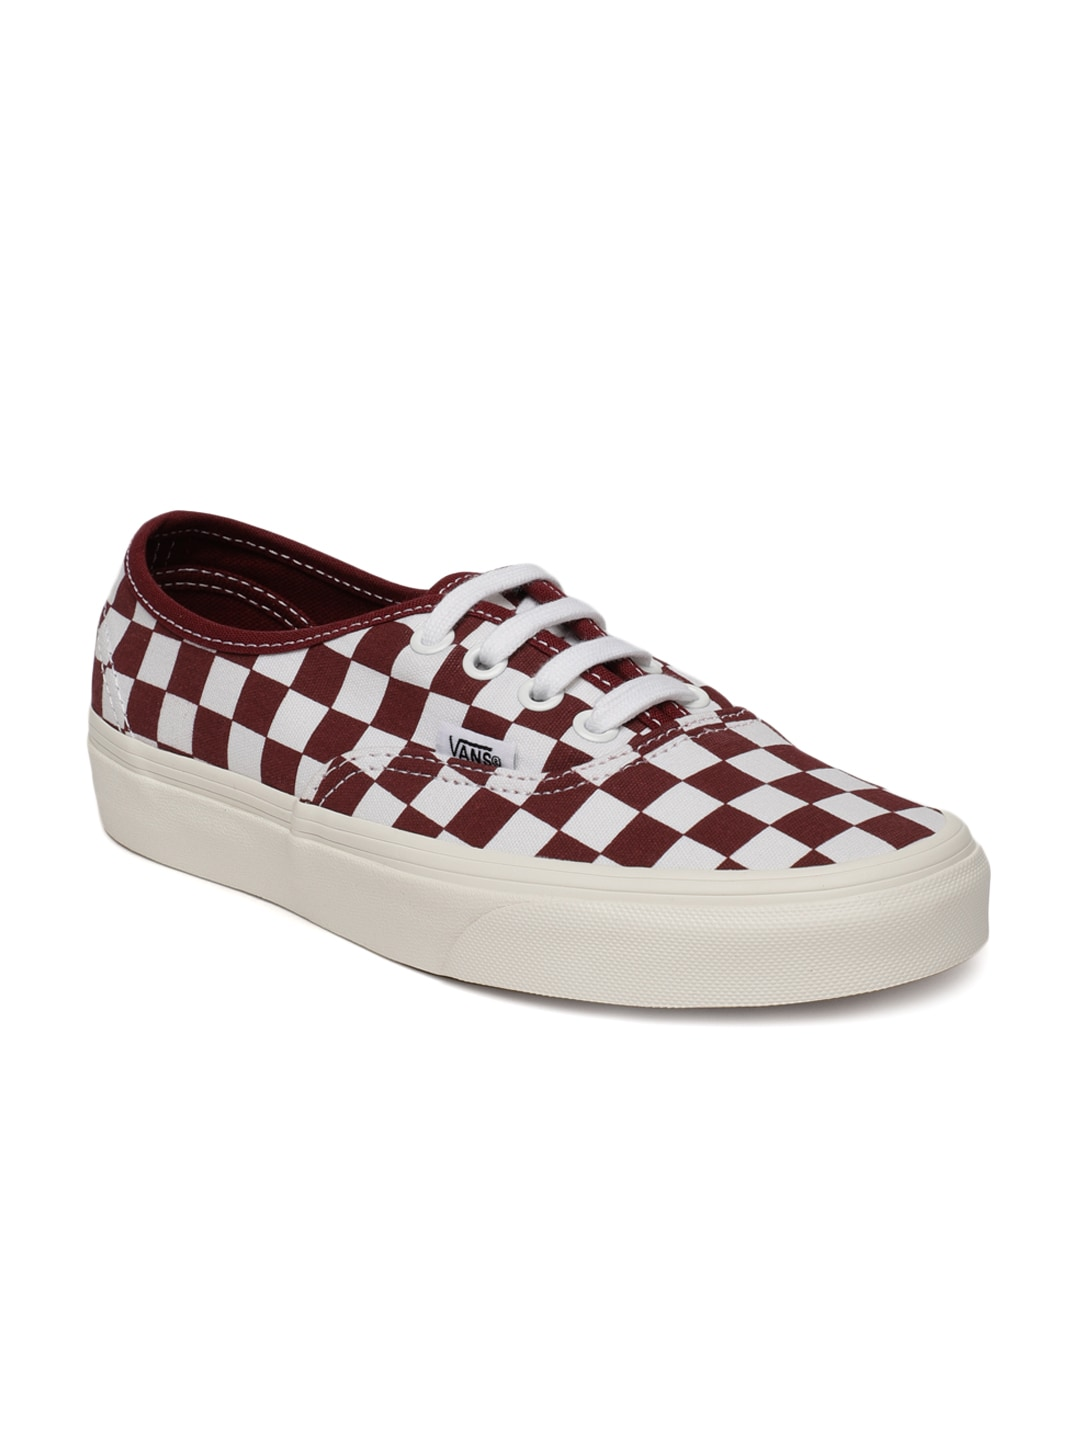 1ae803e837 Vans - Buy Vans Footwear